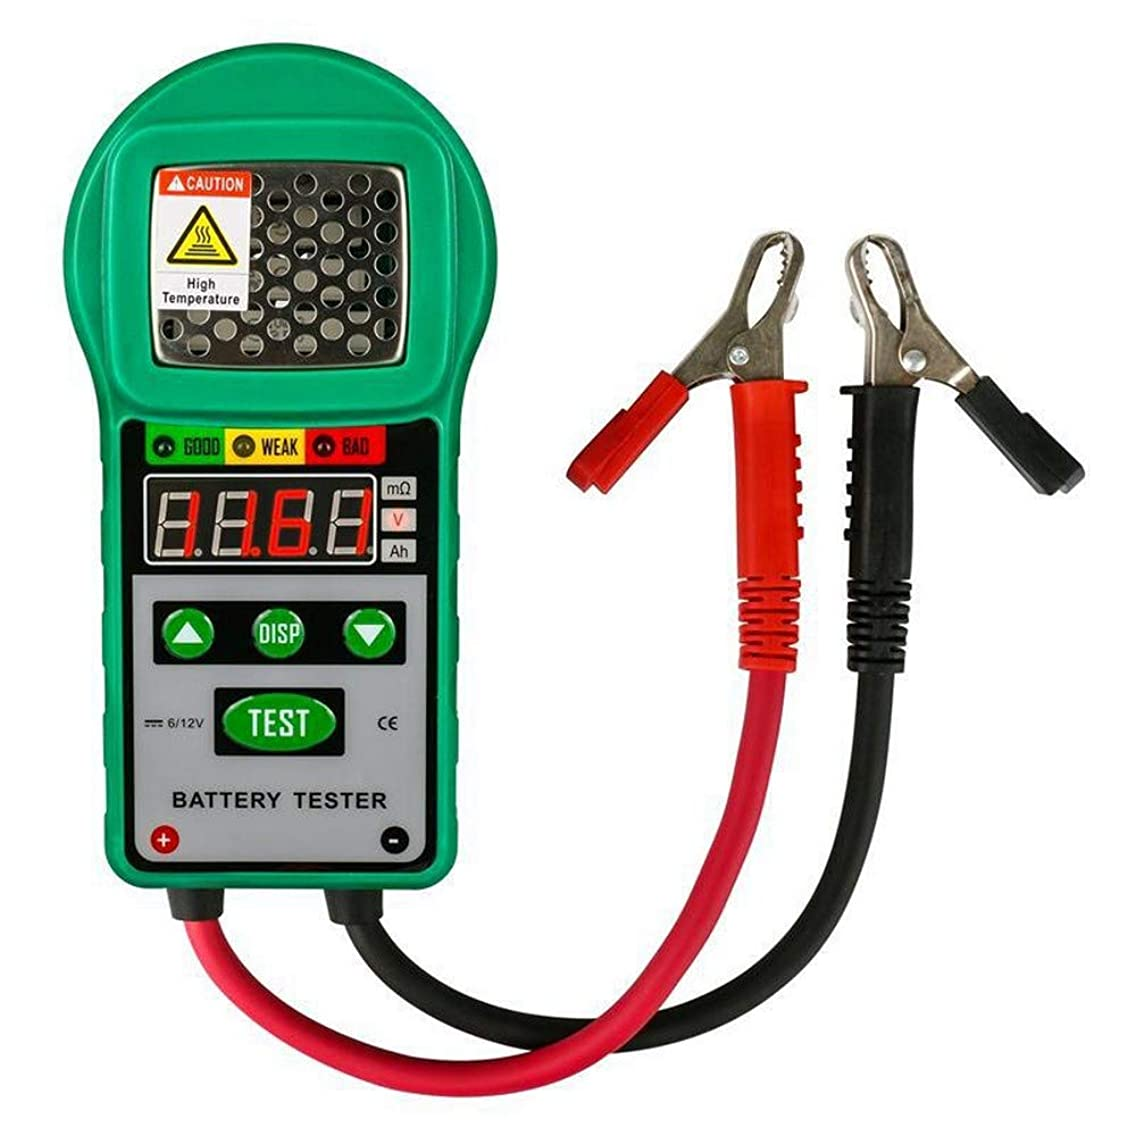 DUOYI DY225 Car Battery Tester Analyzer 6V 12V DC Automotive Resistance Test Auto for Electric Battery Energy Storage Marine, Made of Solid ABS,Measure Precisely